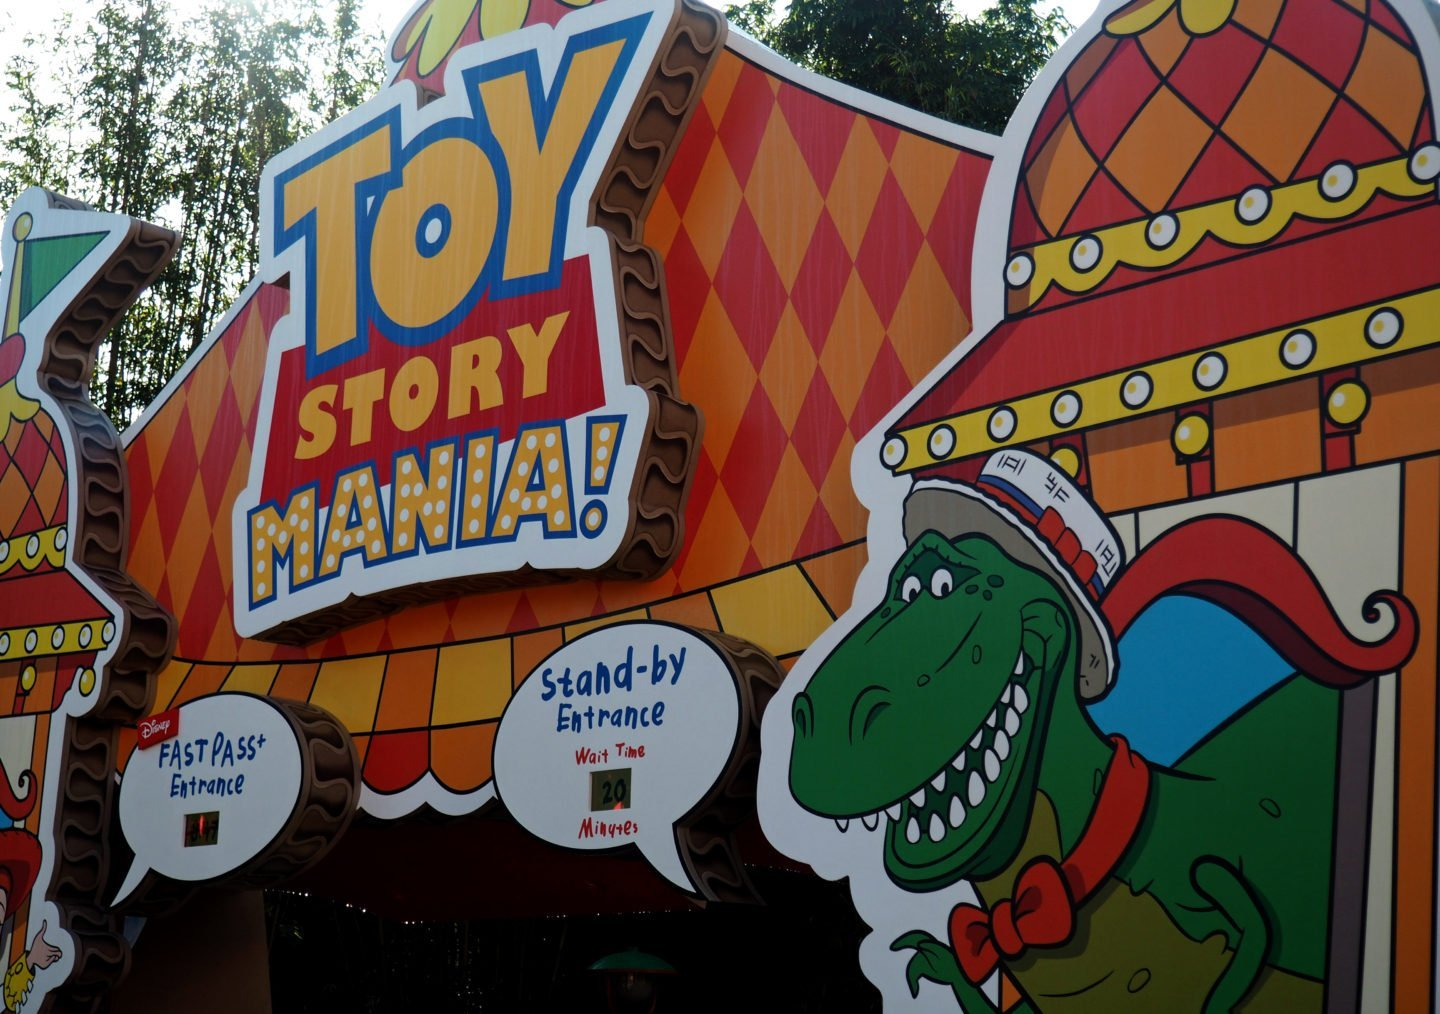 toy story land quick guide for all the things to do eat and see at toy story land walt disney world #toystoryland #disneyworld #toystory